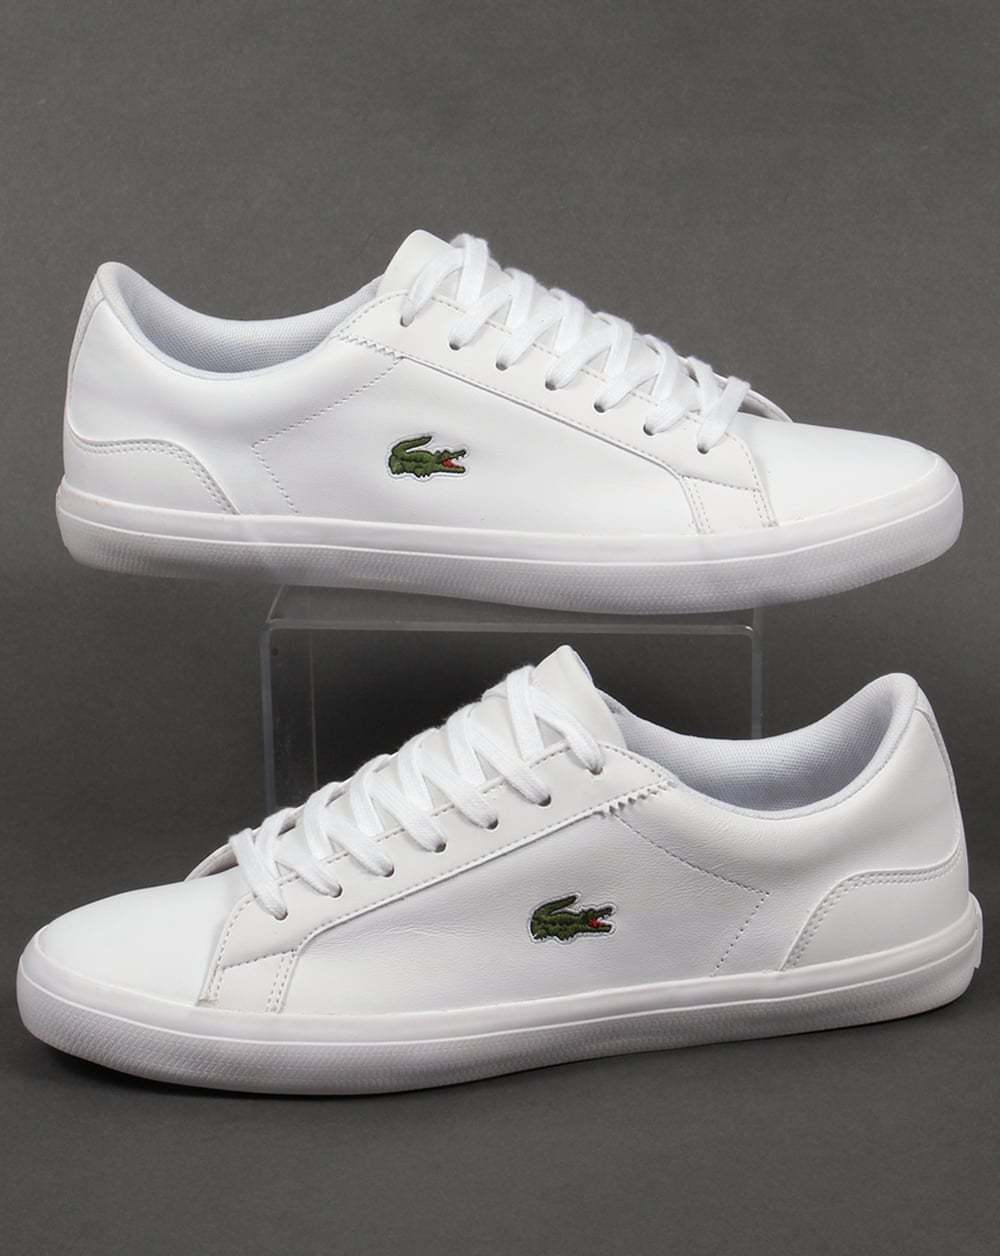 Lacoste Lerond Trainers in White - soft